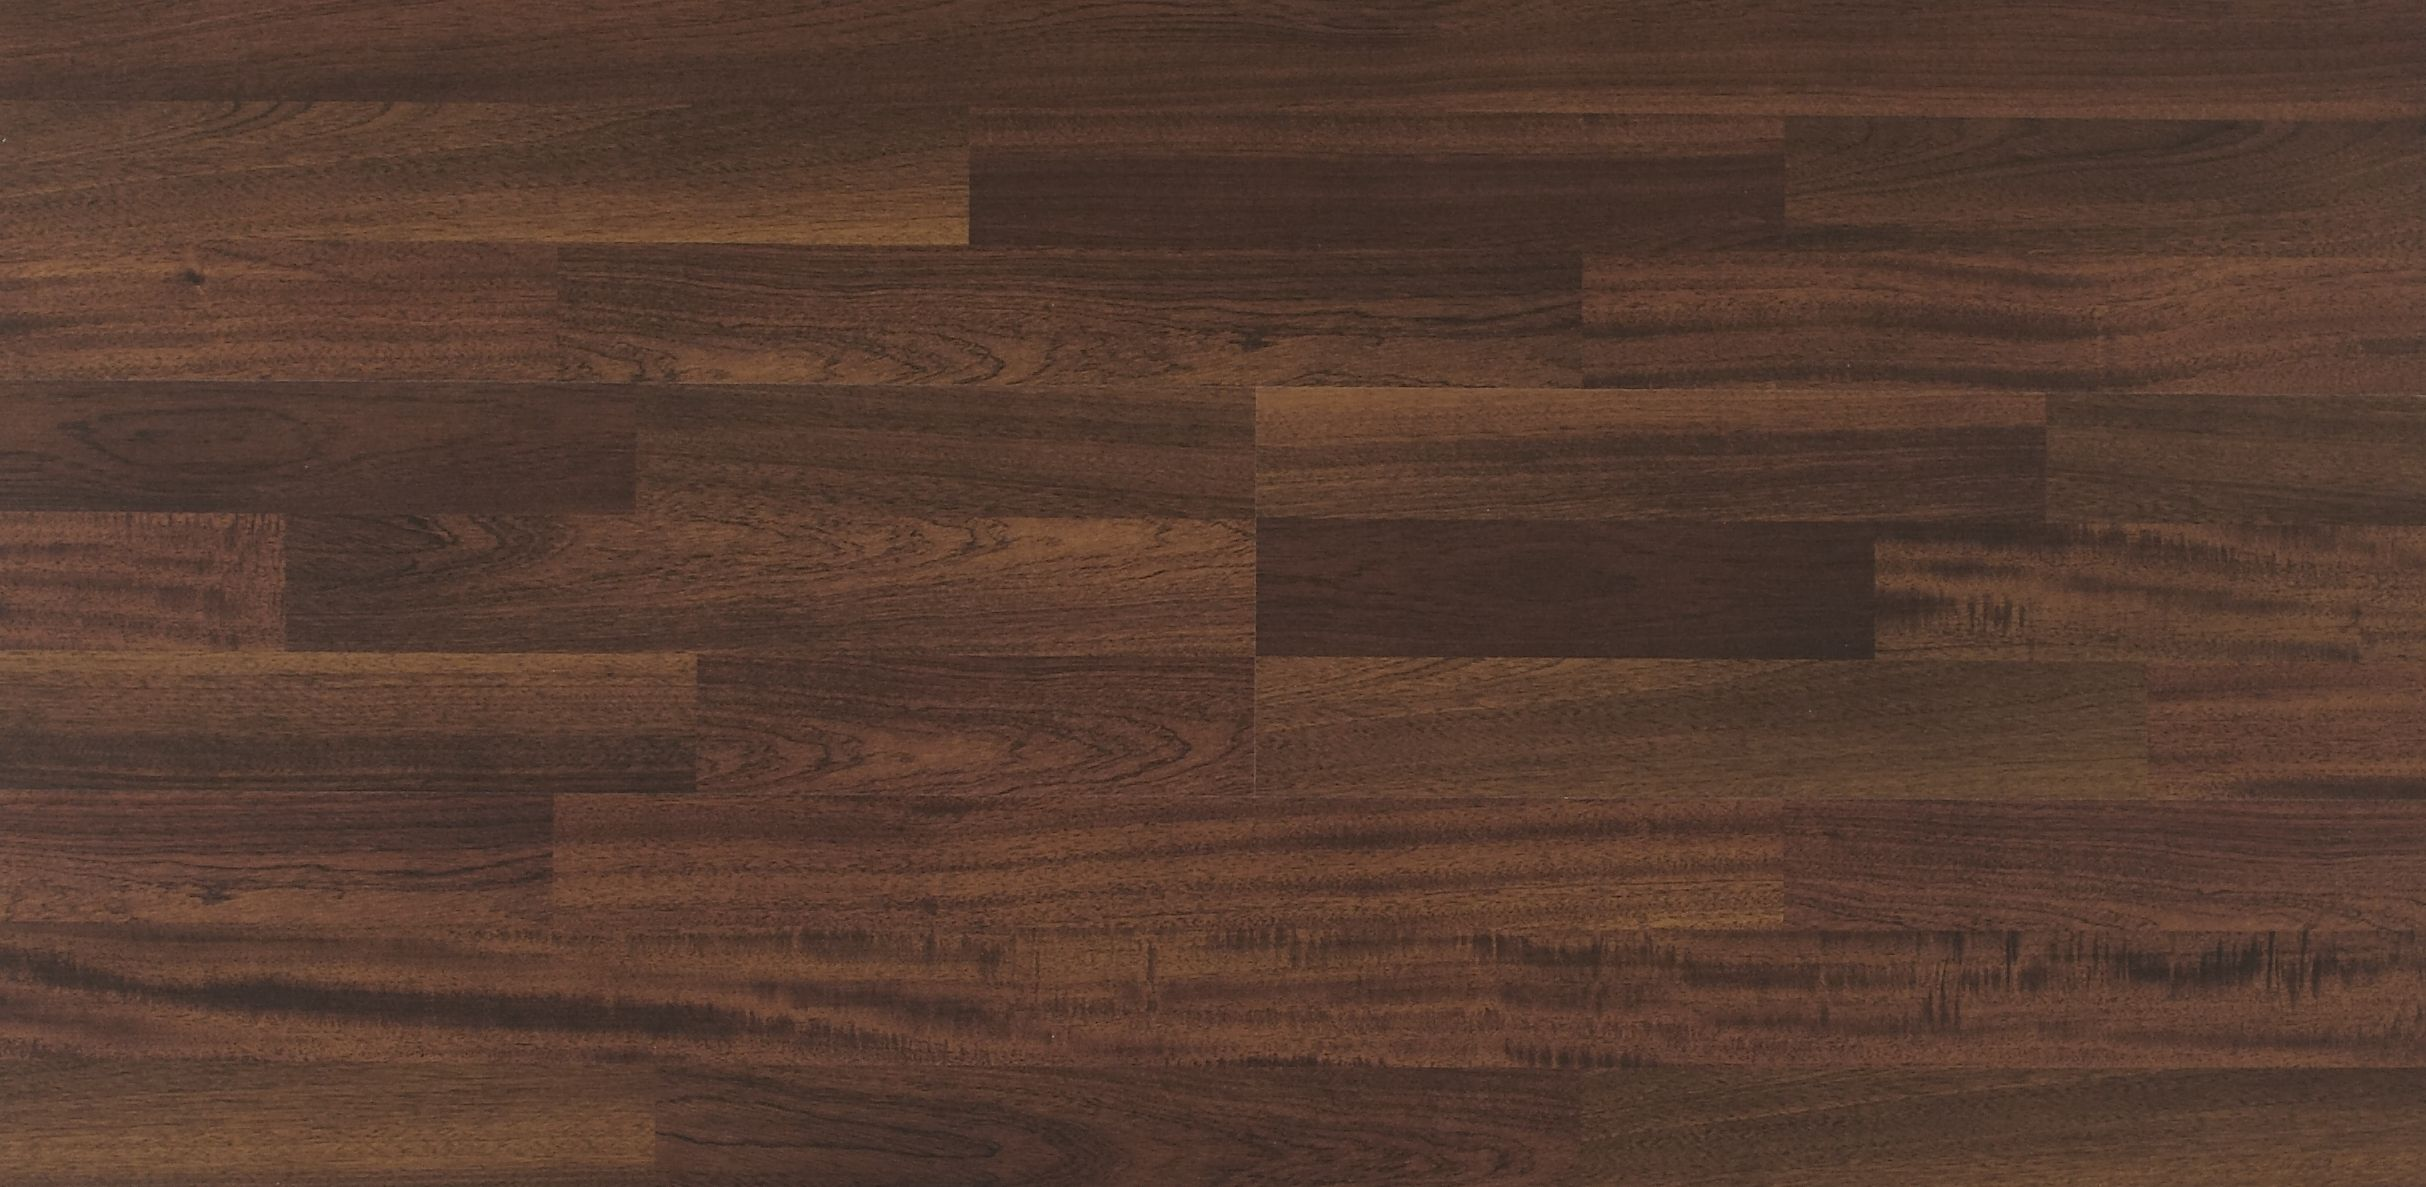 Wood Background Texture Wooden Tiles Free Image Wood Floor Texture Interior House Paint Colors Floor Texture